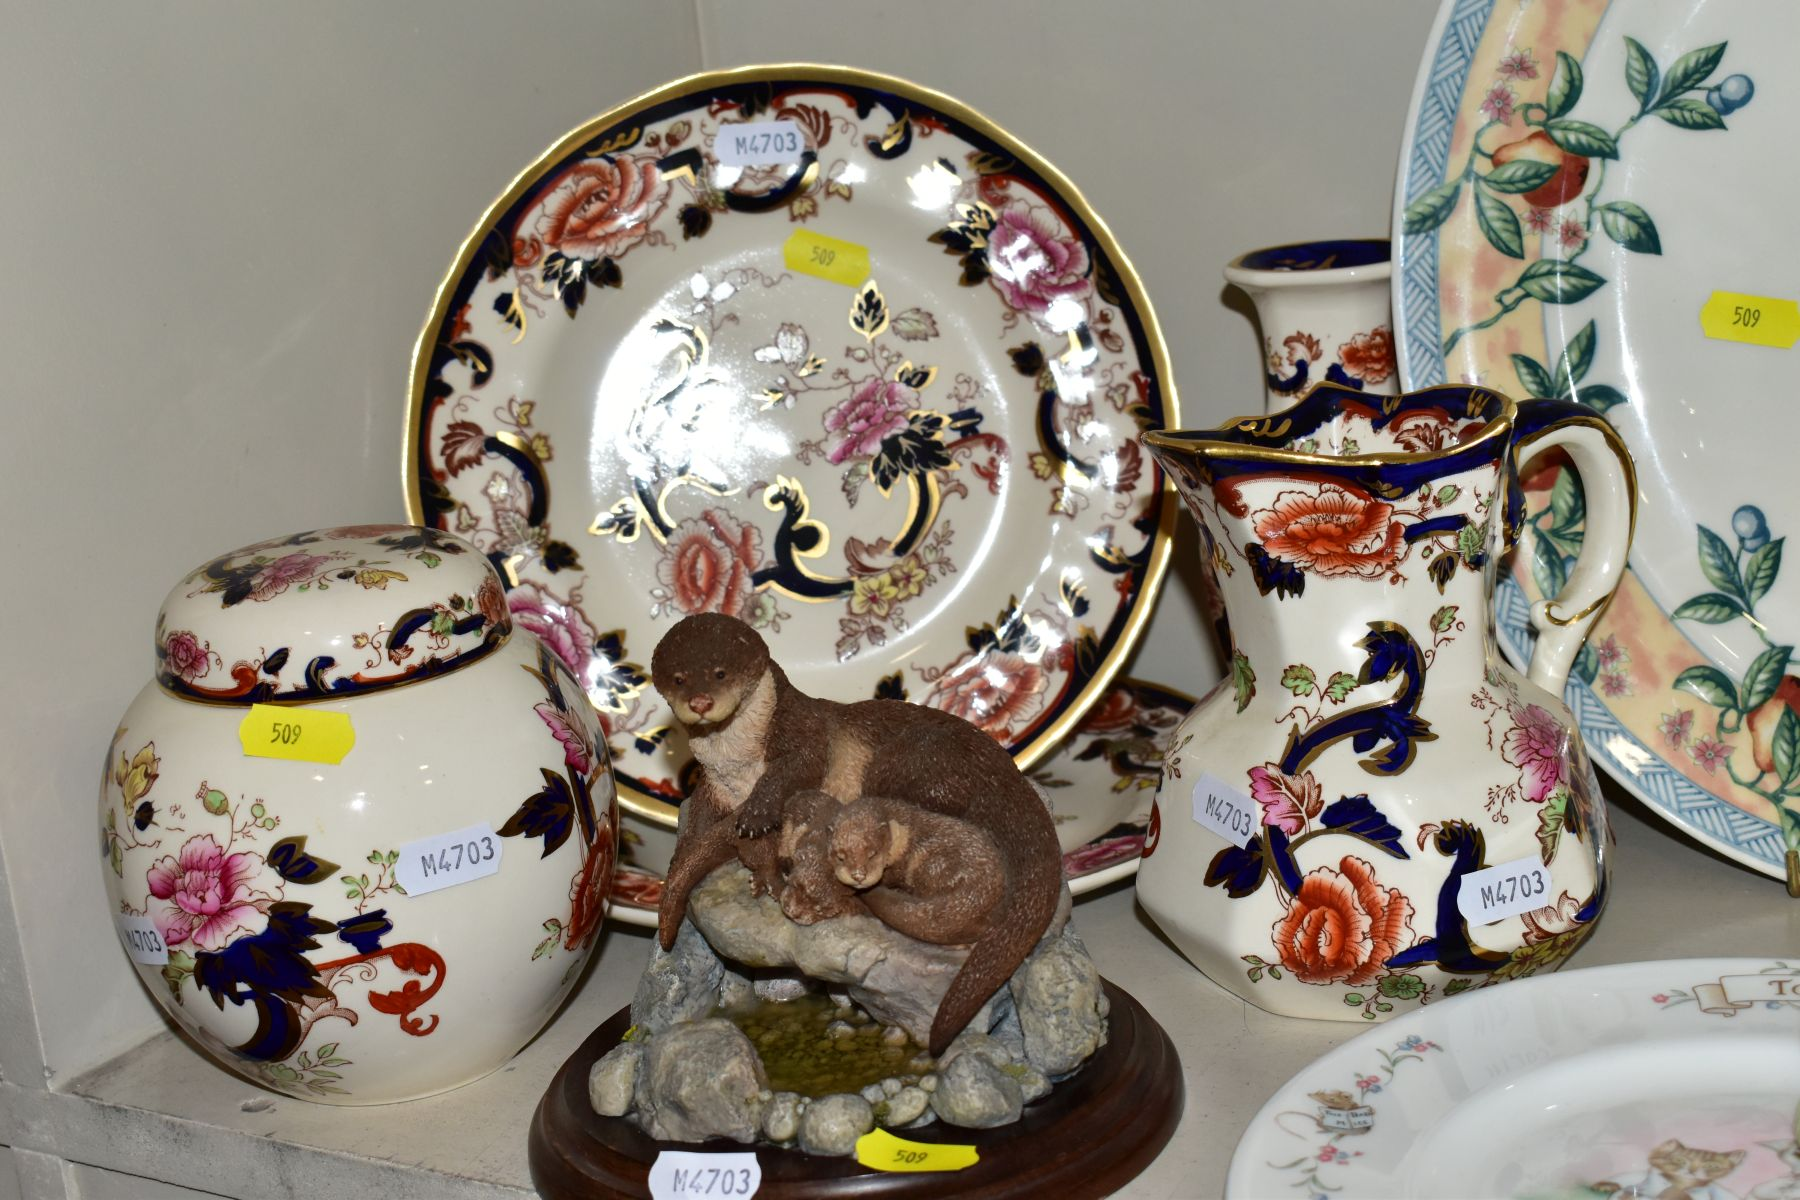 DECORATIVE CERAMICS ETC, to include a boxed Beswick Peter Rabbit, Royal Albert 'Tom Kitten' plate, - Image 8 of 11